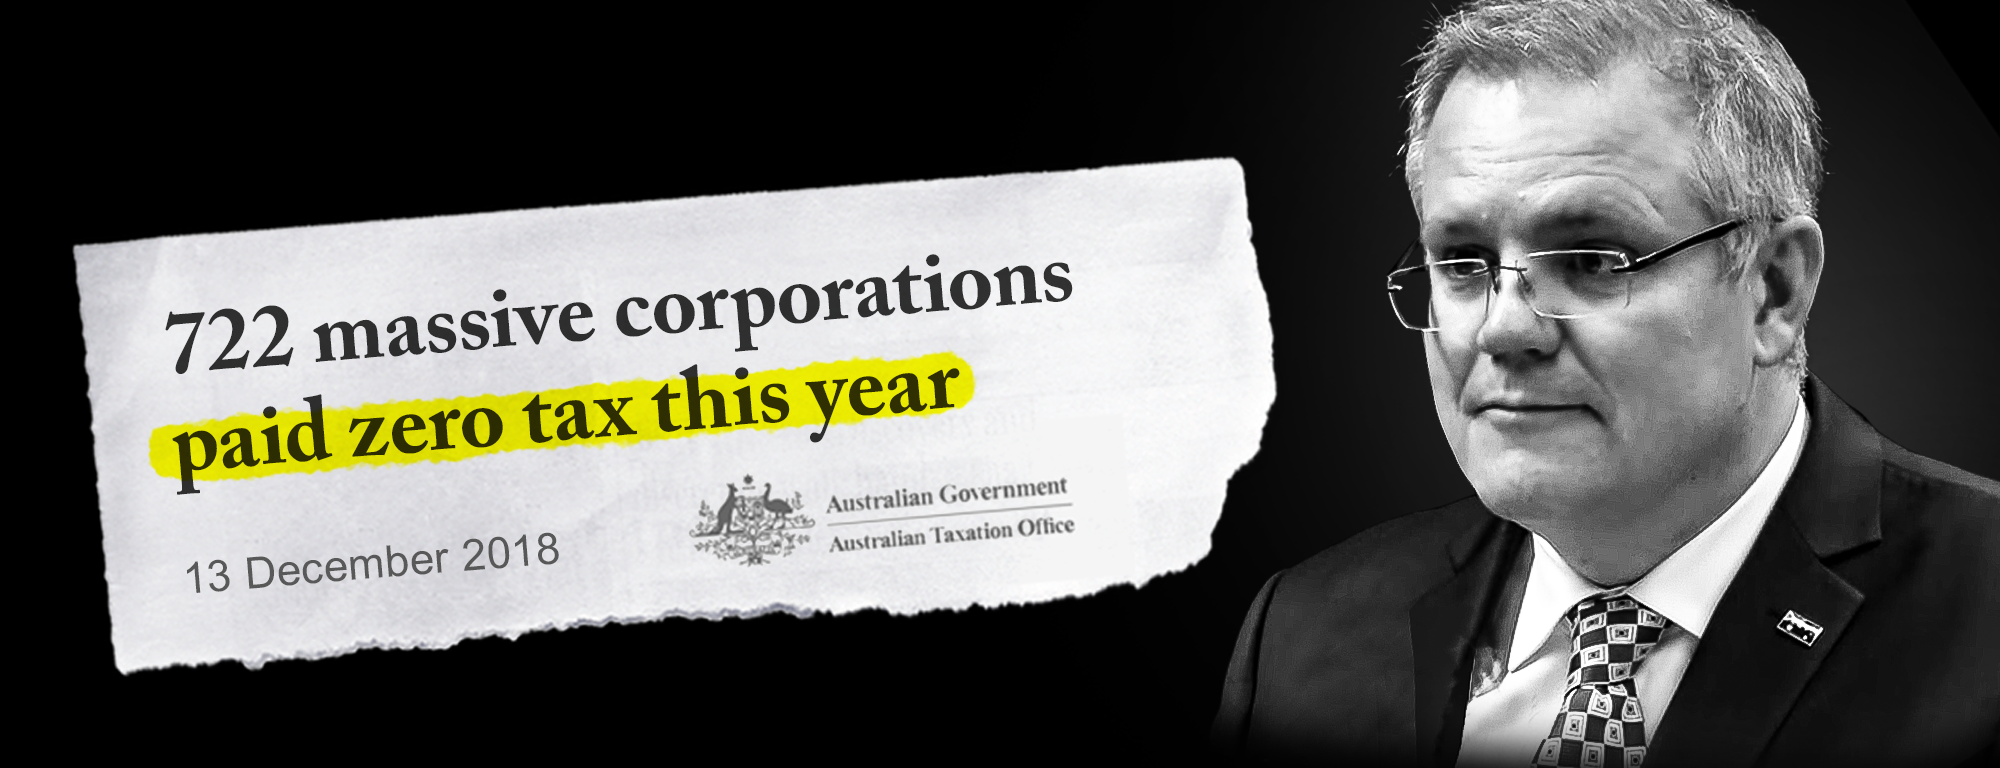 "An image of Scott Morrison in black and white beside a headline that reads ""751 massive corporations paid no tax this year"